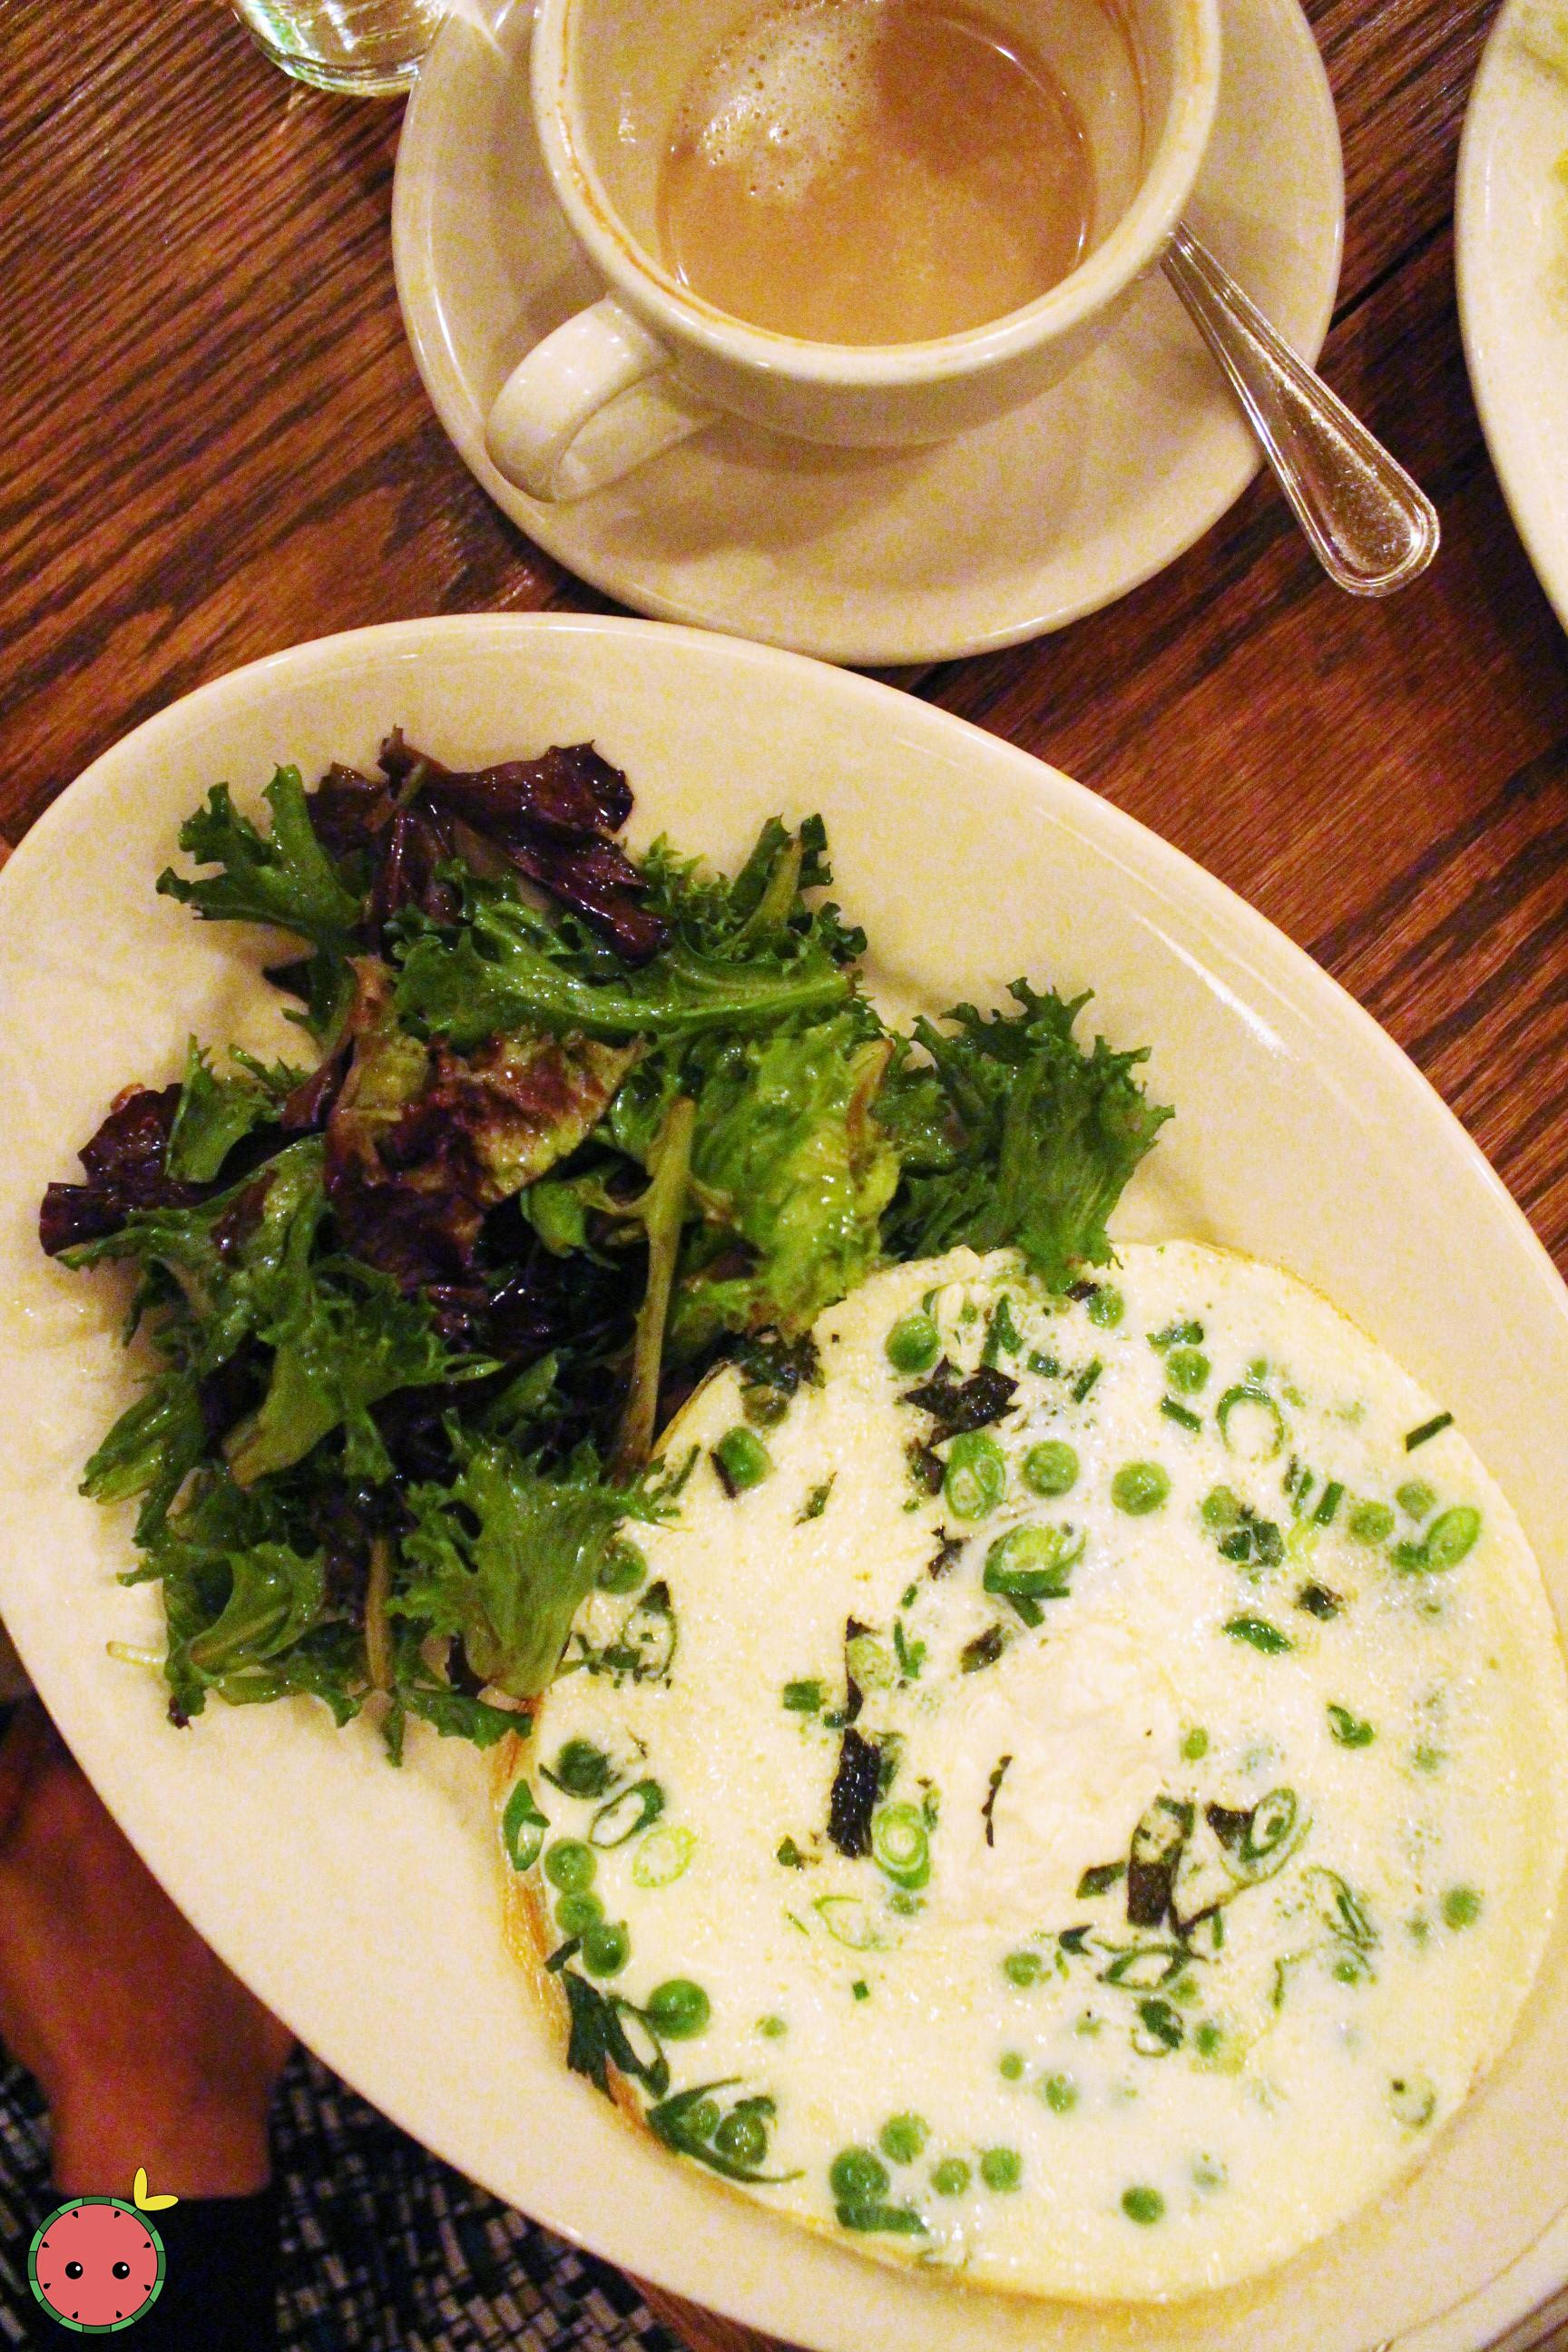 Open-Faced Egg White Omelet - Spring onions, english peas, herbs, and goat cheese with side salad